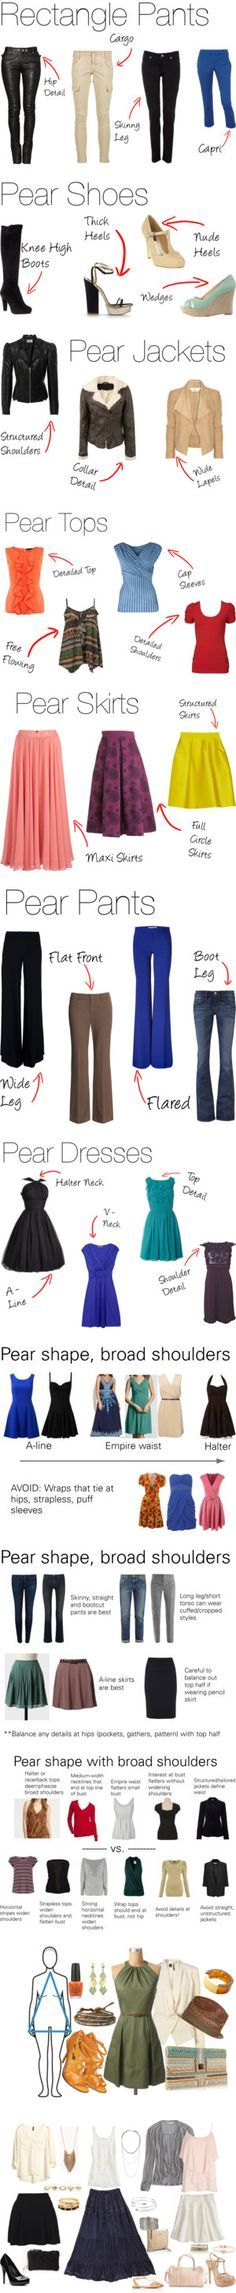 Pear Shape Fashion by alchappell on Polyvore featuring мода, Balmain, J Brand, Dorothy Perkins, A|Wear, Gastone Lucioli, Dsquared2, Vince Camuto, Principles by Ben de Lisi and Alice by Temperley